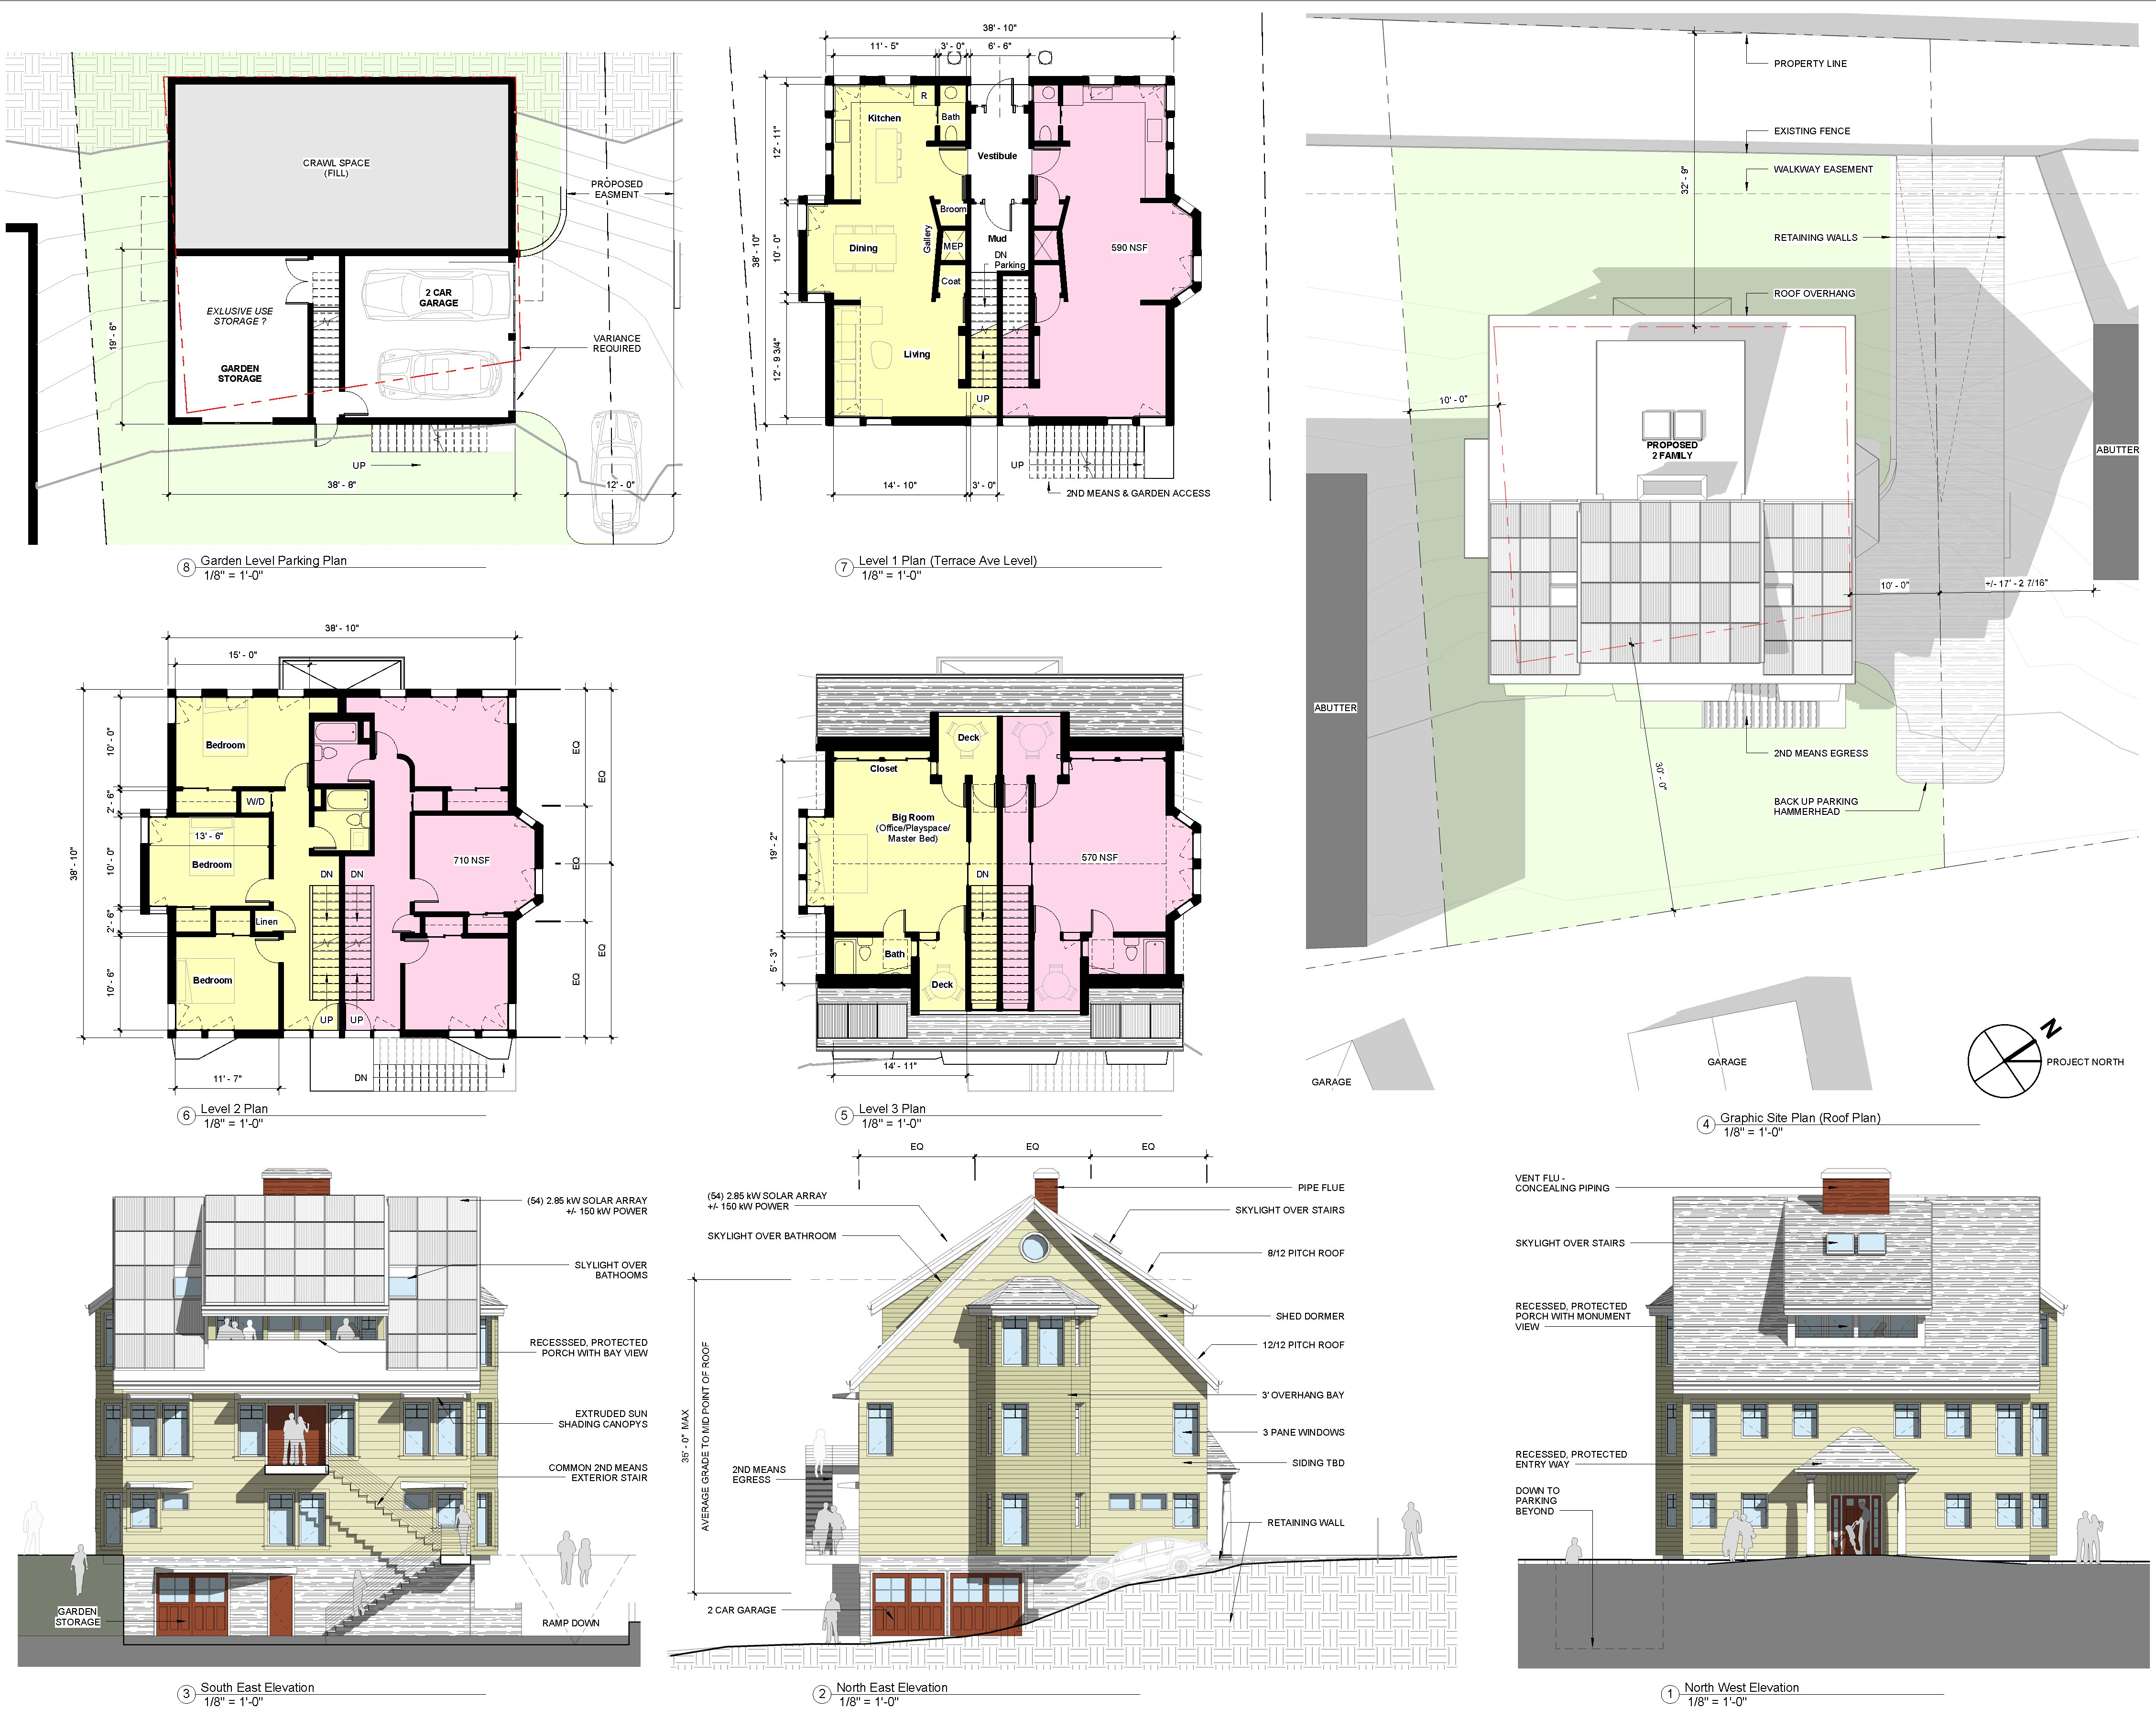 2016 0215 6 Fort Ave Terrace OPT 1 Design Review